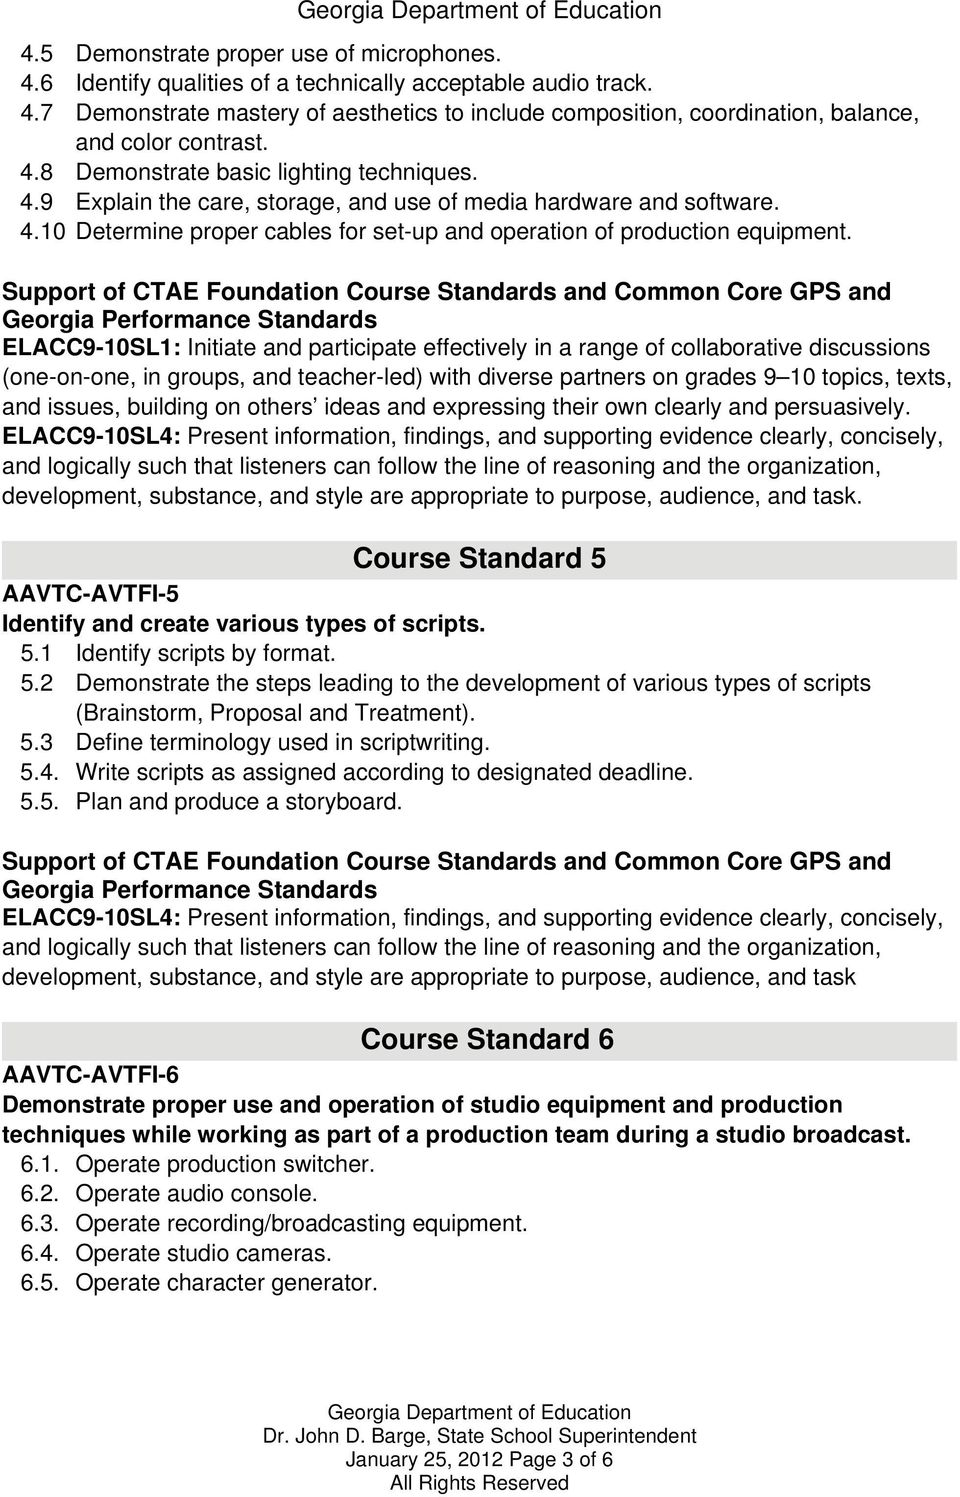 Course Standard 5 AAVTC-AVTFI-5 Identify and create various types of scripts. 5.1 Identify scripts by format. 5.2 Demonstrate the steps leading to the development of various types of scripts (Brainstorm, Proposal and Treatment).